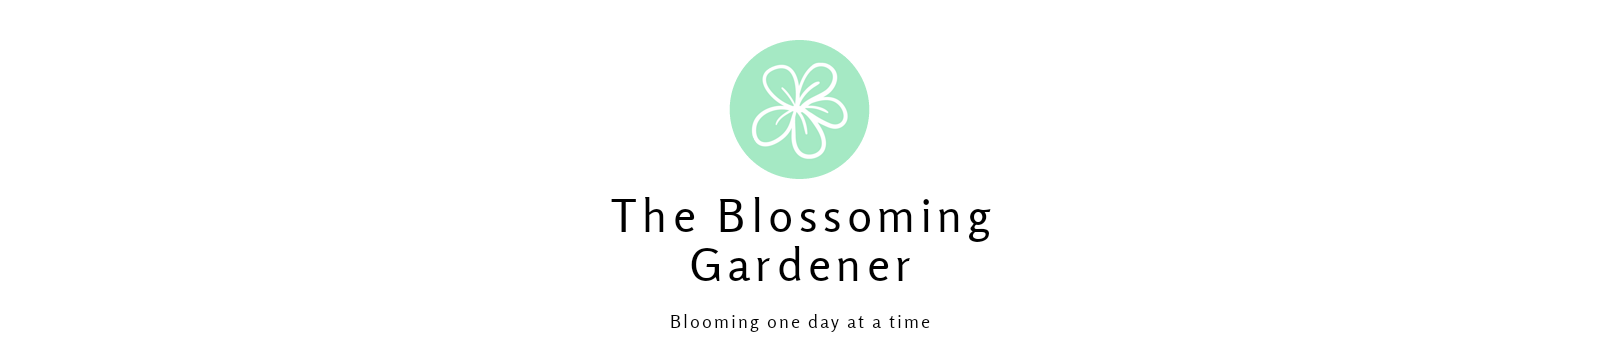 The Blossoming Gardener